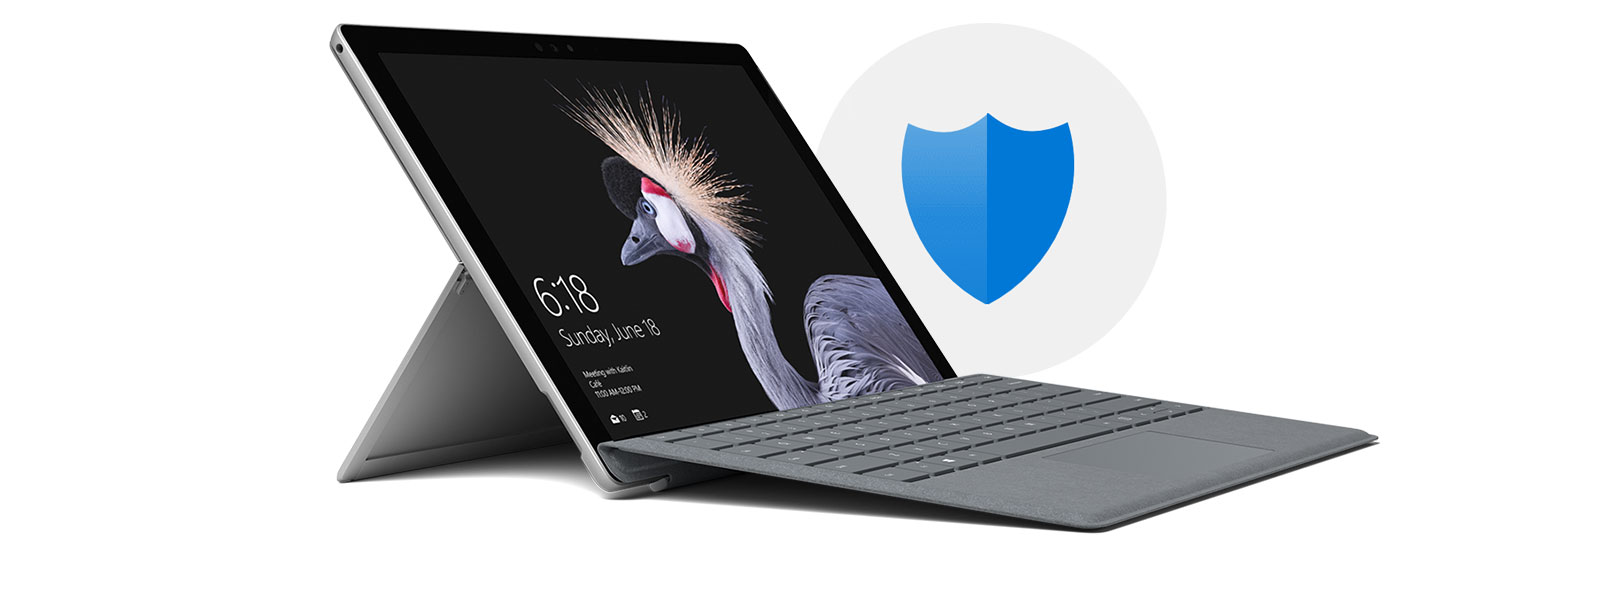 Surface Pro in laptop mode with start screen, facing right and a security protection icon in the background.